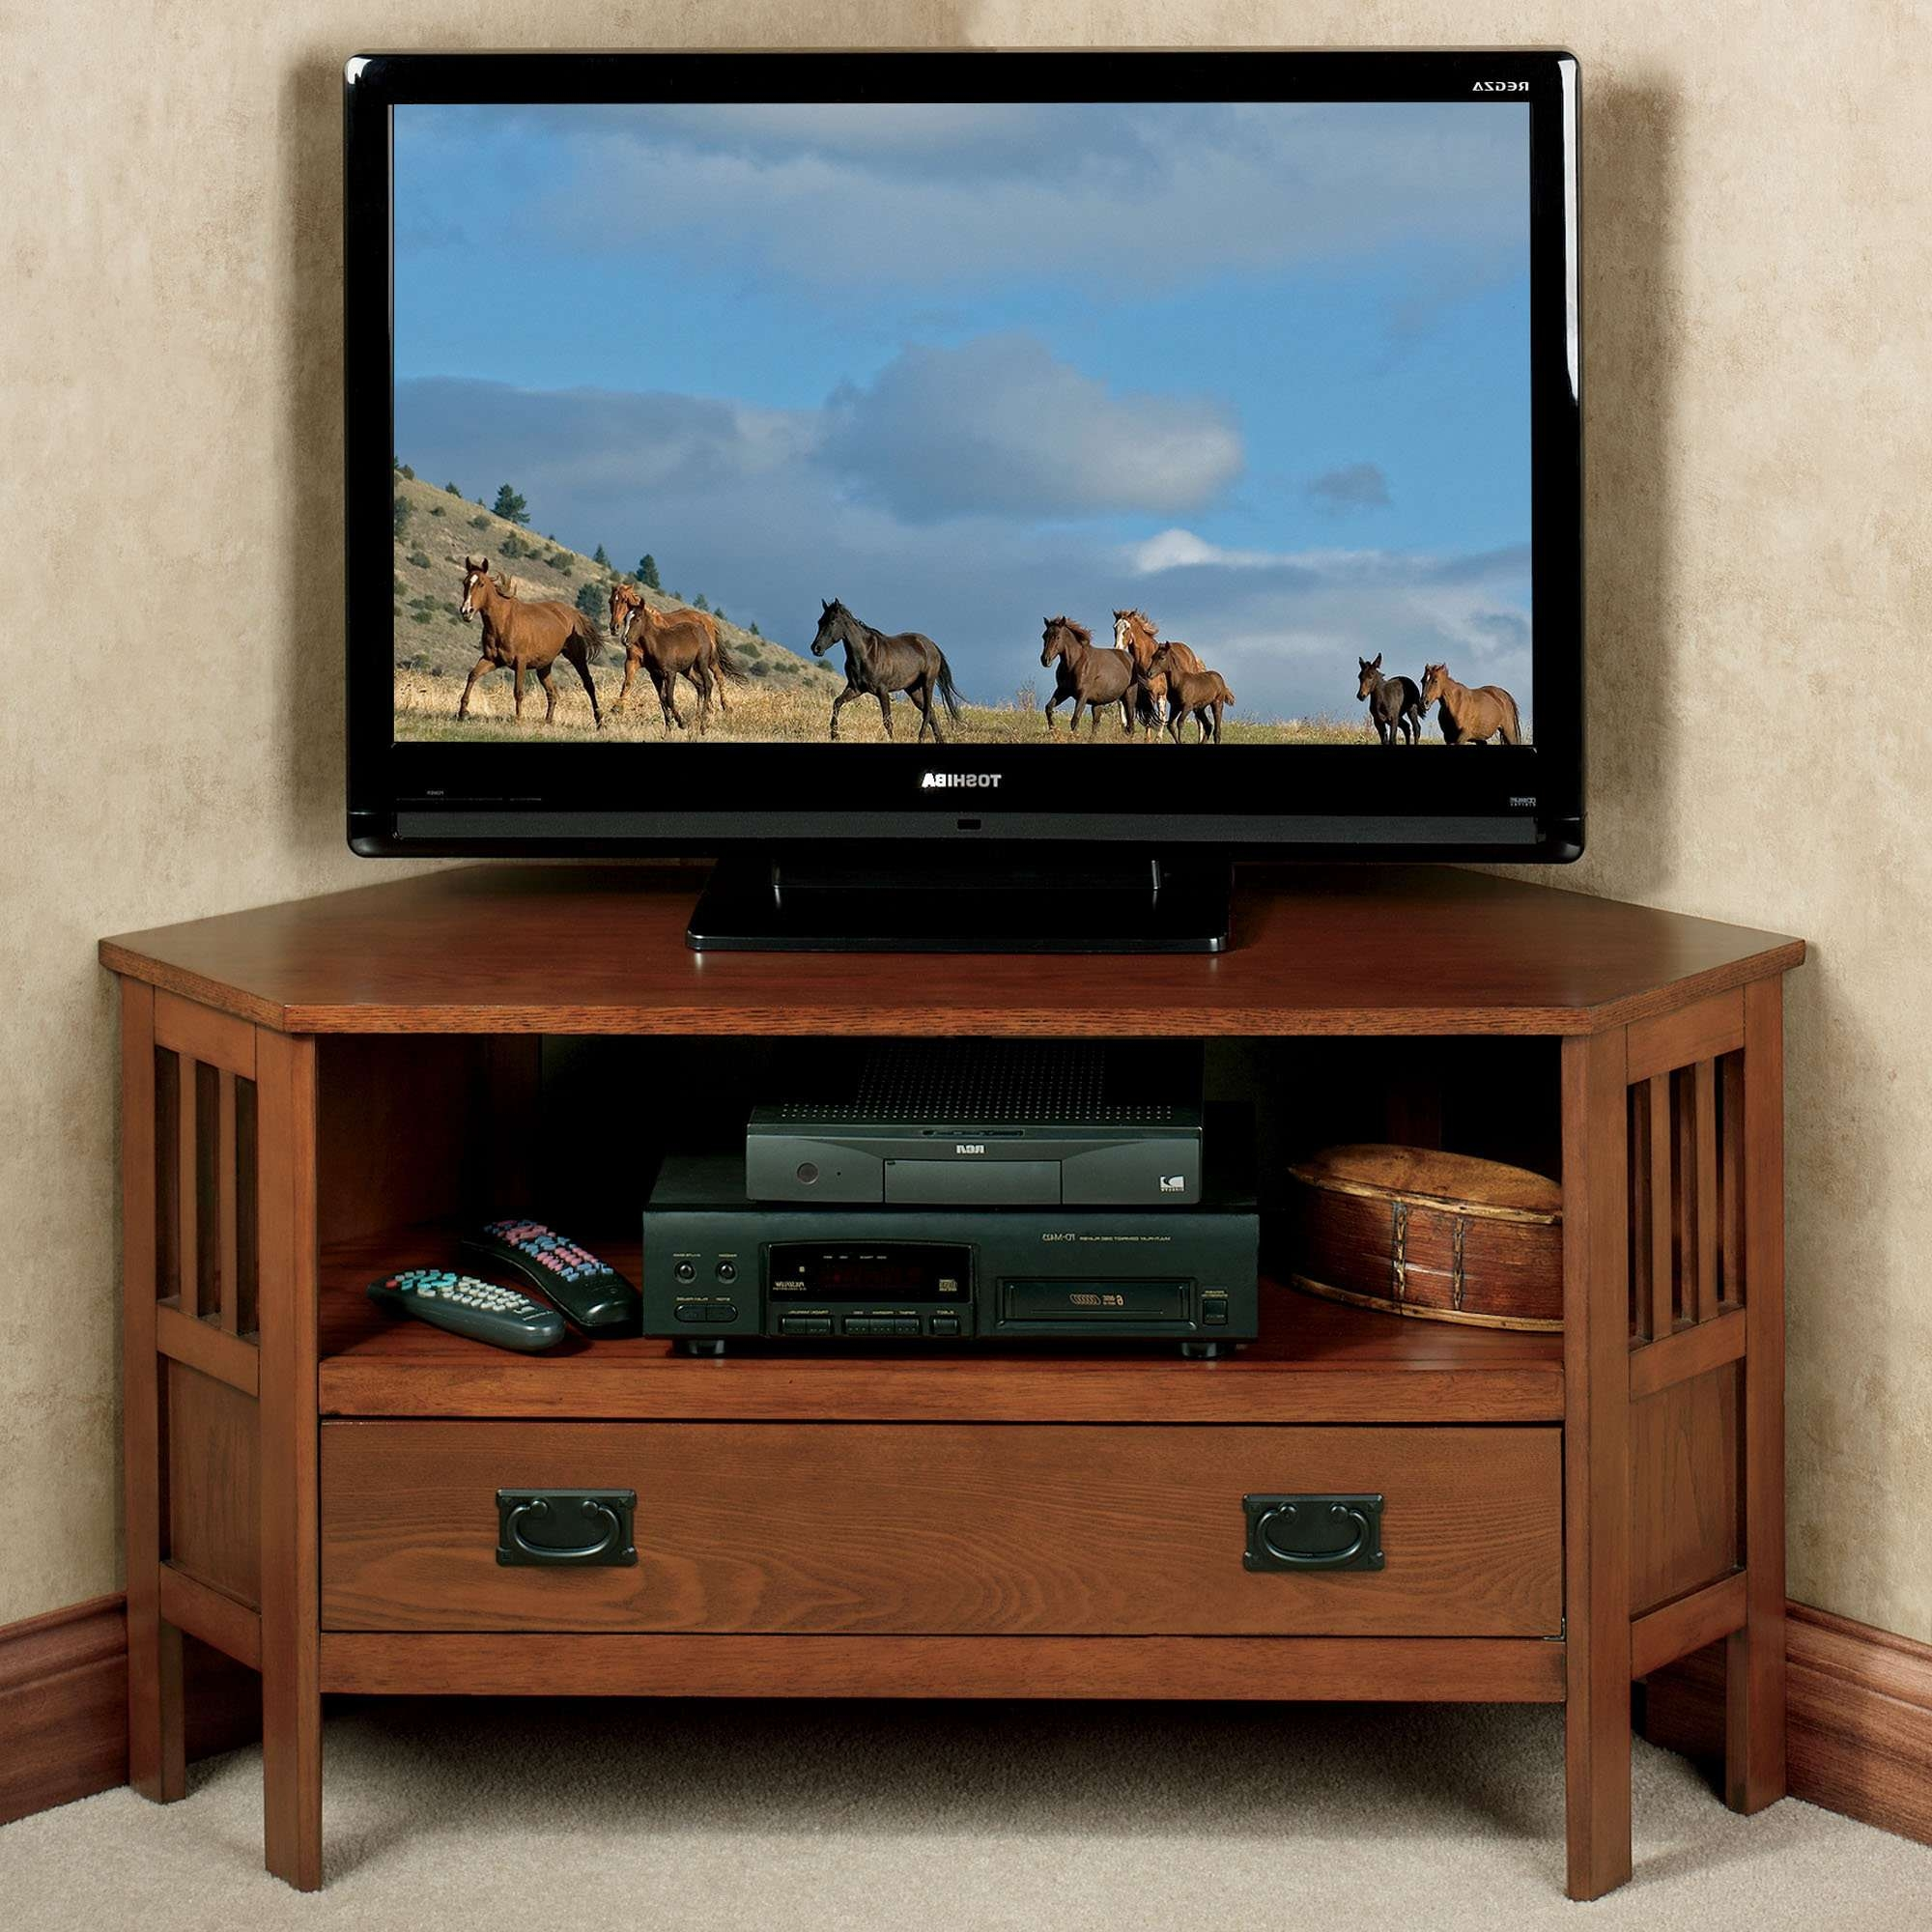 Home Decor: Alluring Wood Tv Stands For Flat Screens With Corner For Light Oak Tv Stands Flat Screen (View 4 of 15)